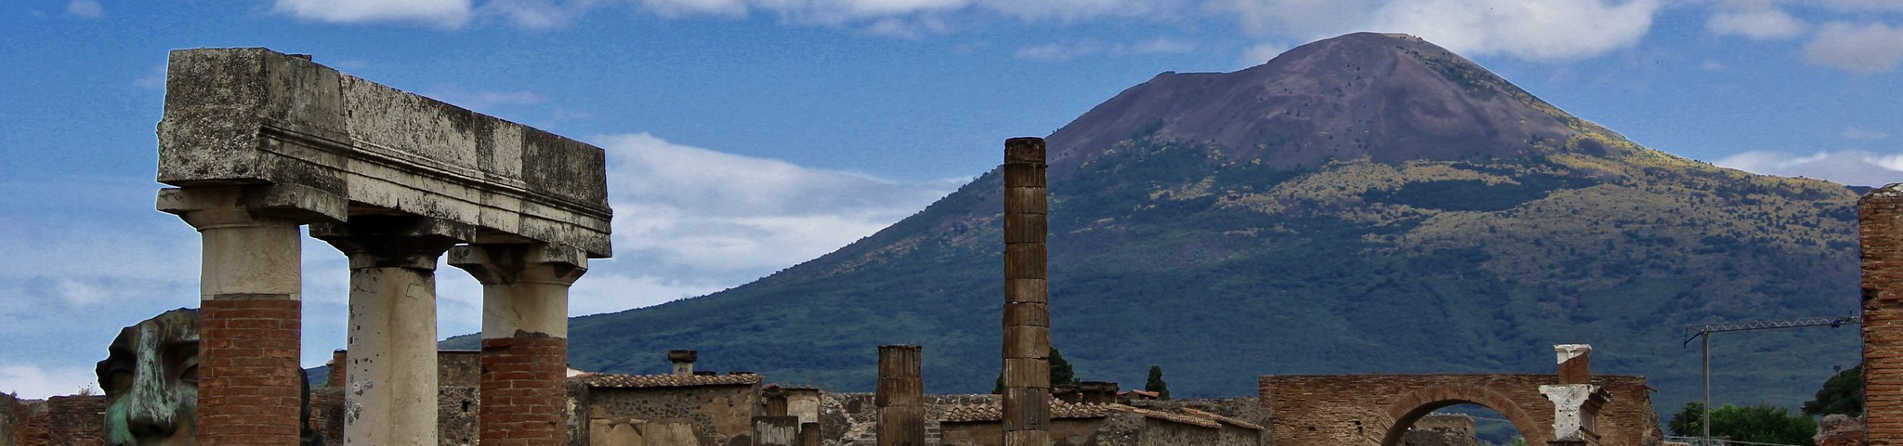 Where to go after Pompeii?